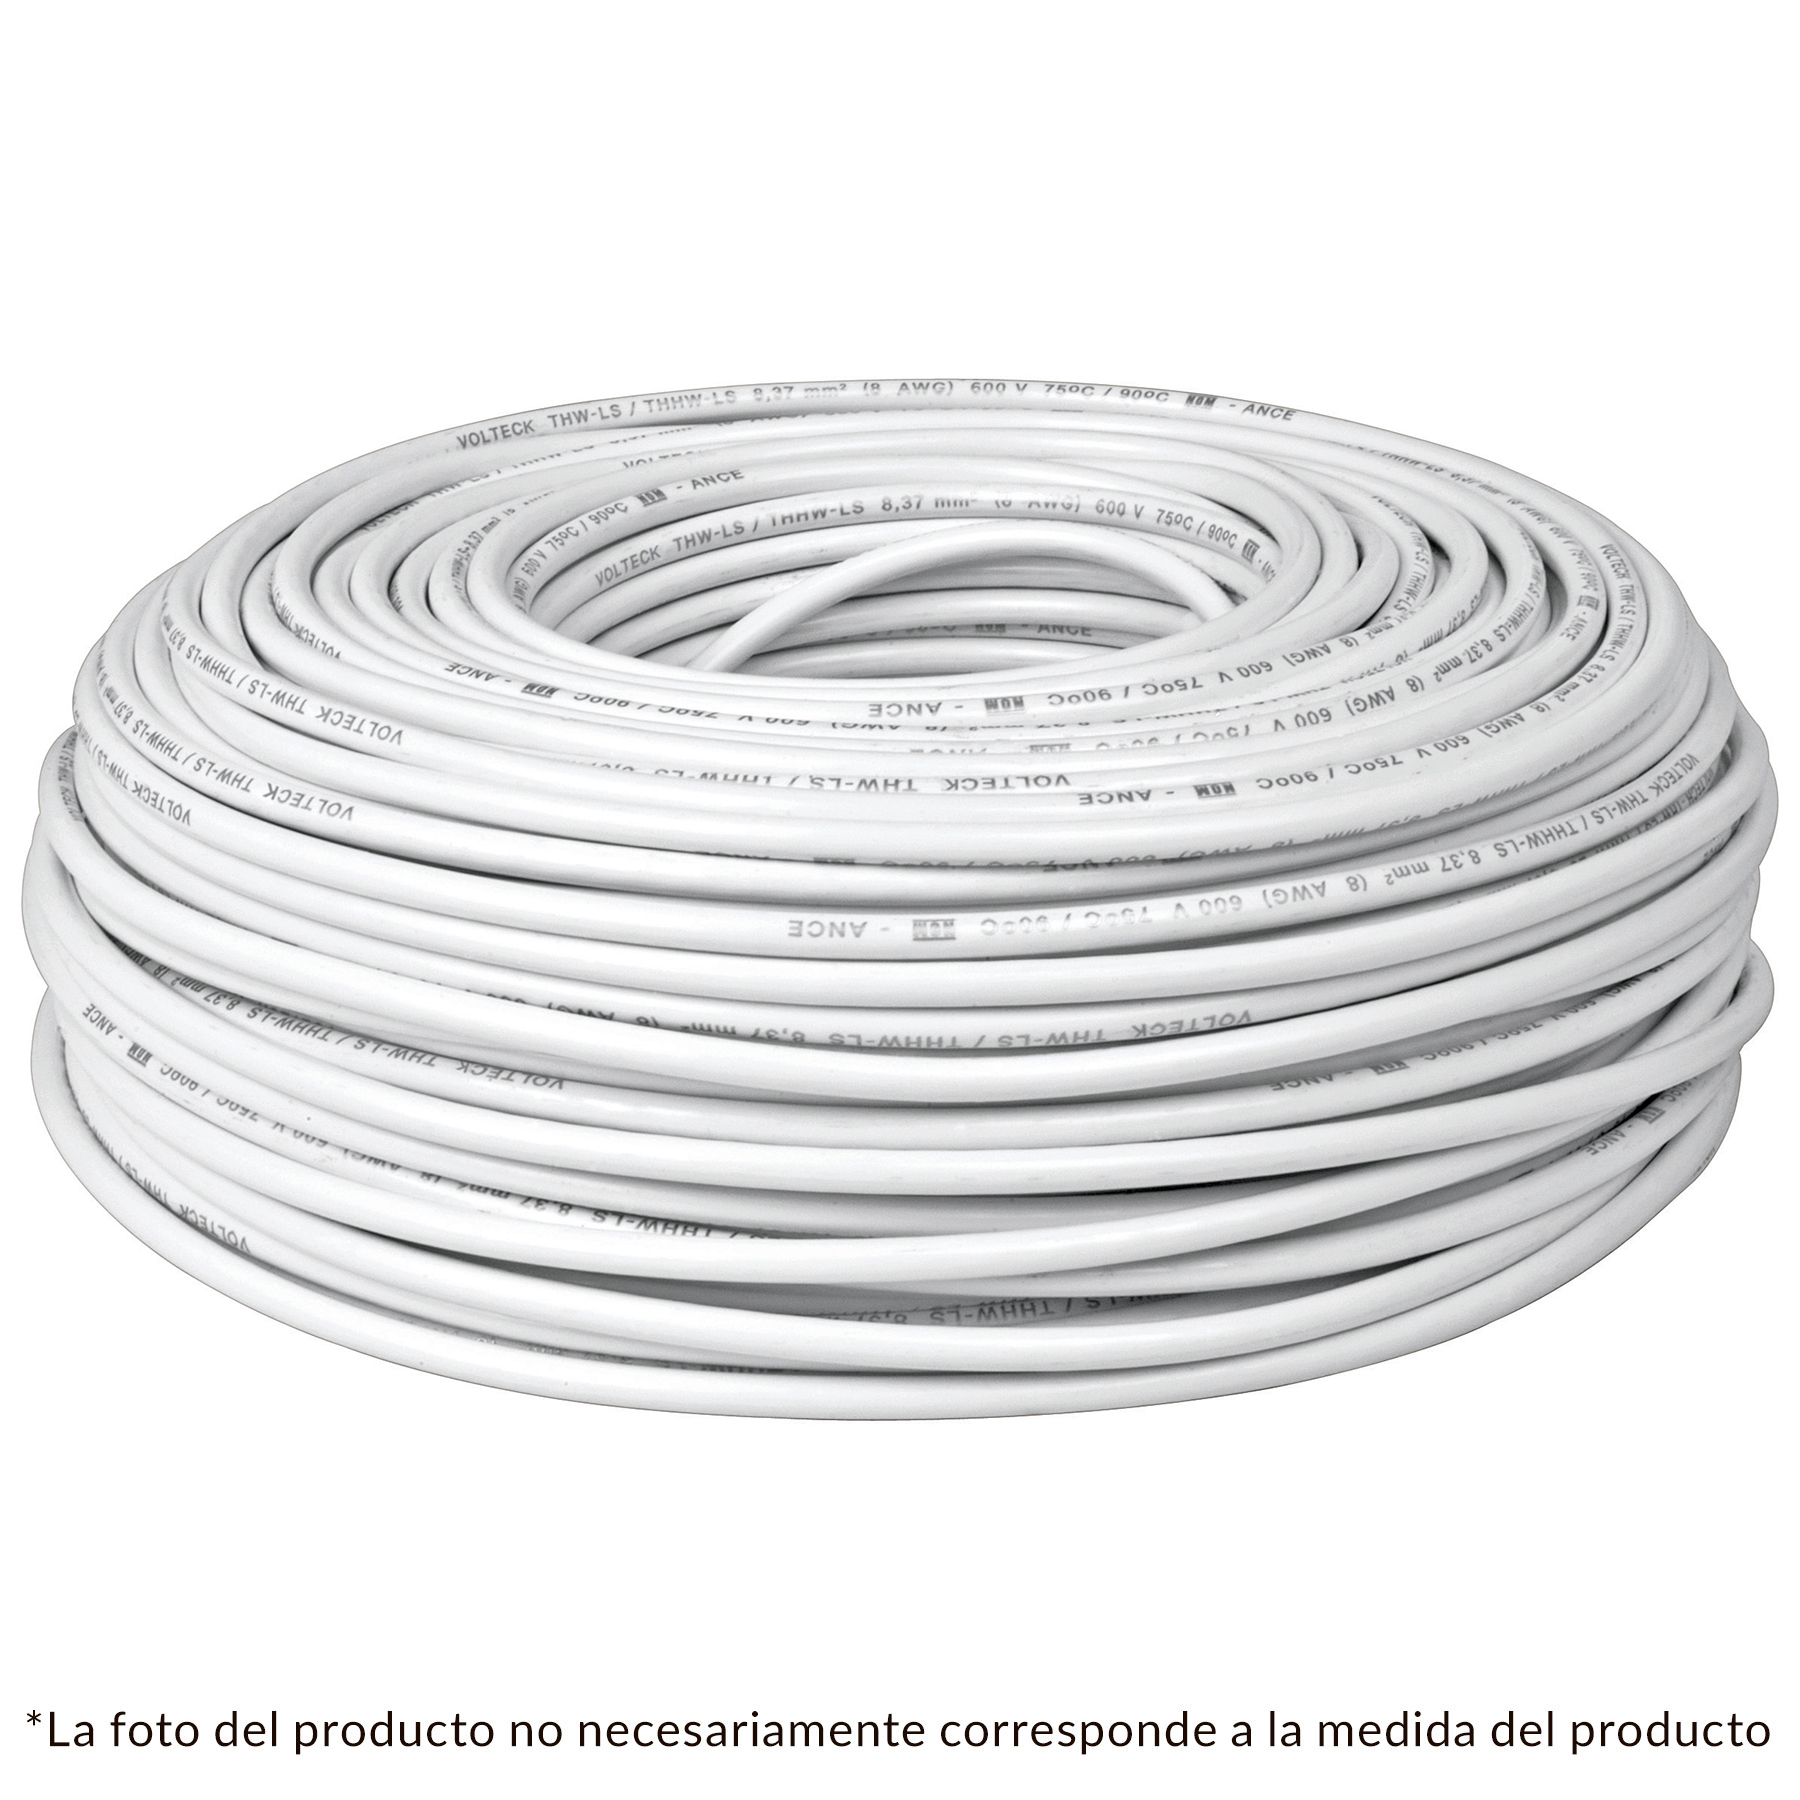 Cable THHW-LS, 12 AWG, color blanco rollo 100 m